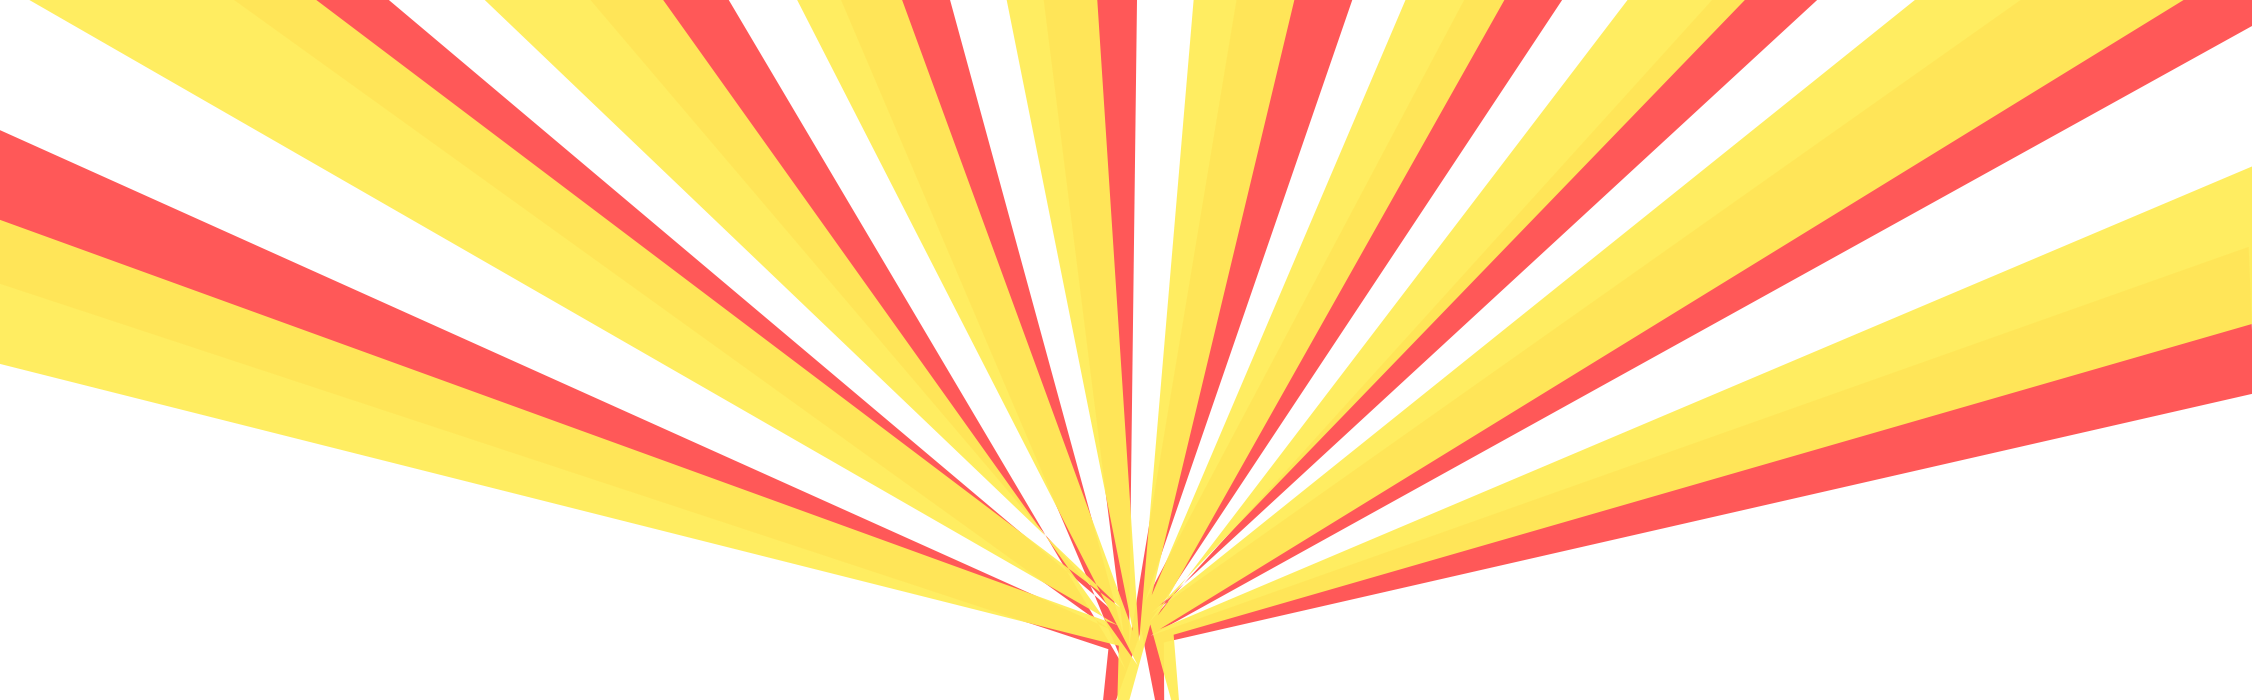 Clipart sun beams banner freeuse HQ Ray PNG Transparent Ray.PNG Images. | PlusPNG banner freeuse